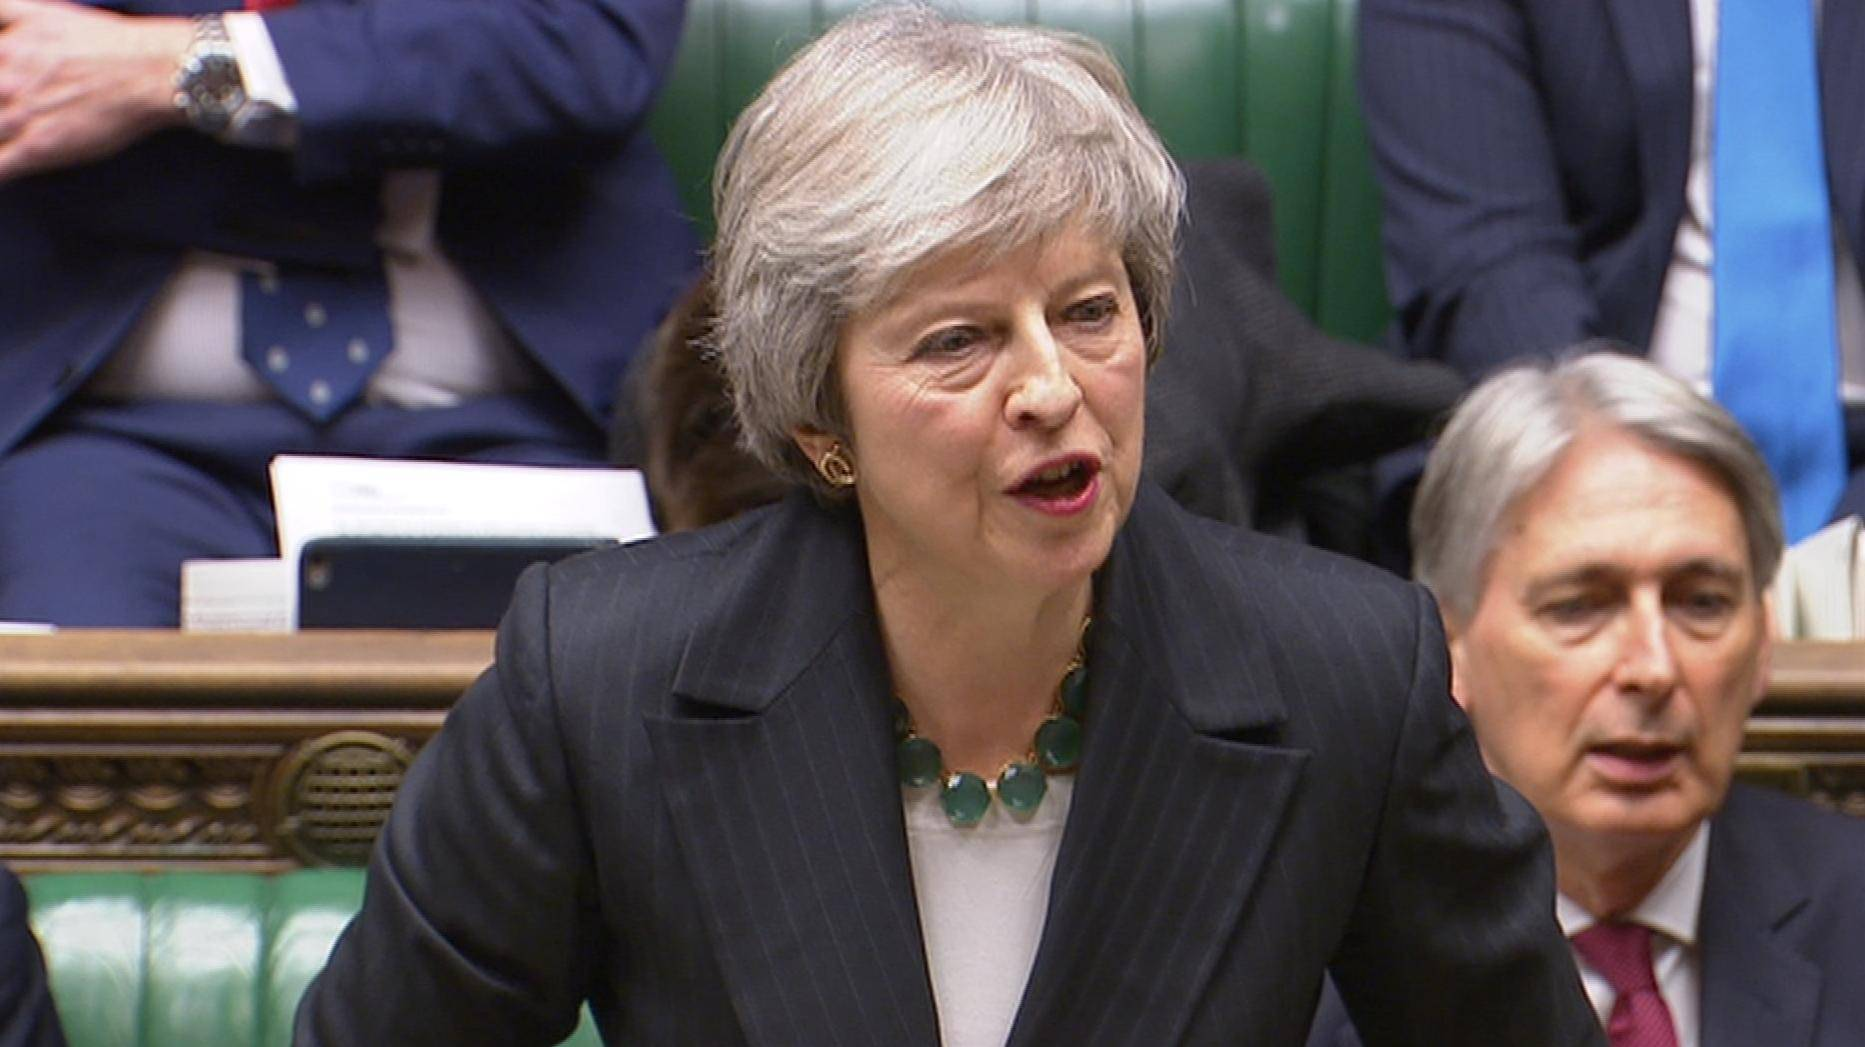 A still image from video footage shows Britain's Prime Minister Theresa May speak about Brexit, in the House of Commons, in central London